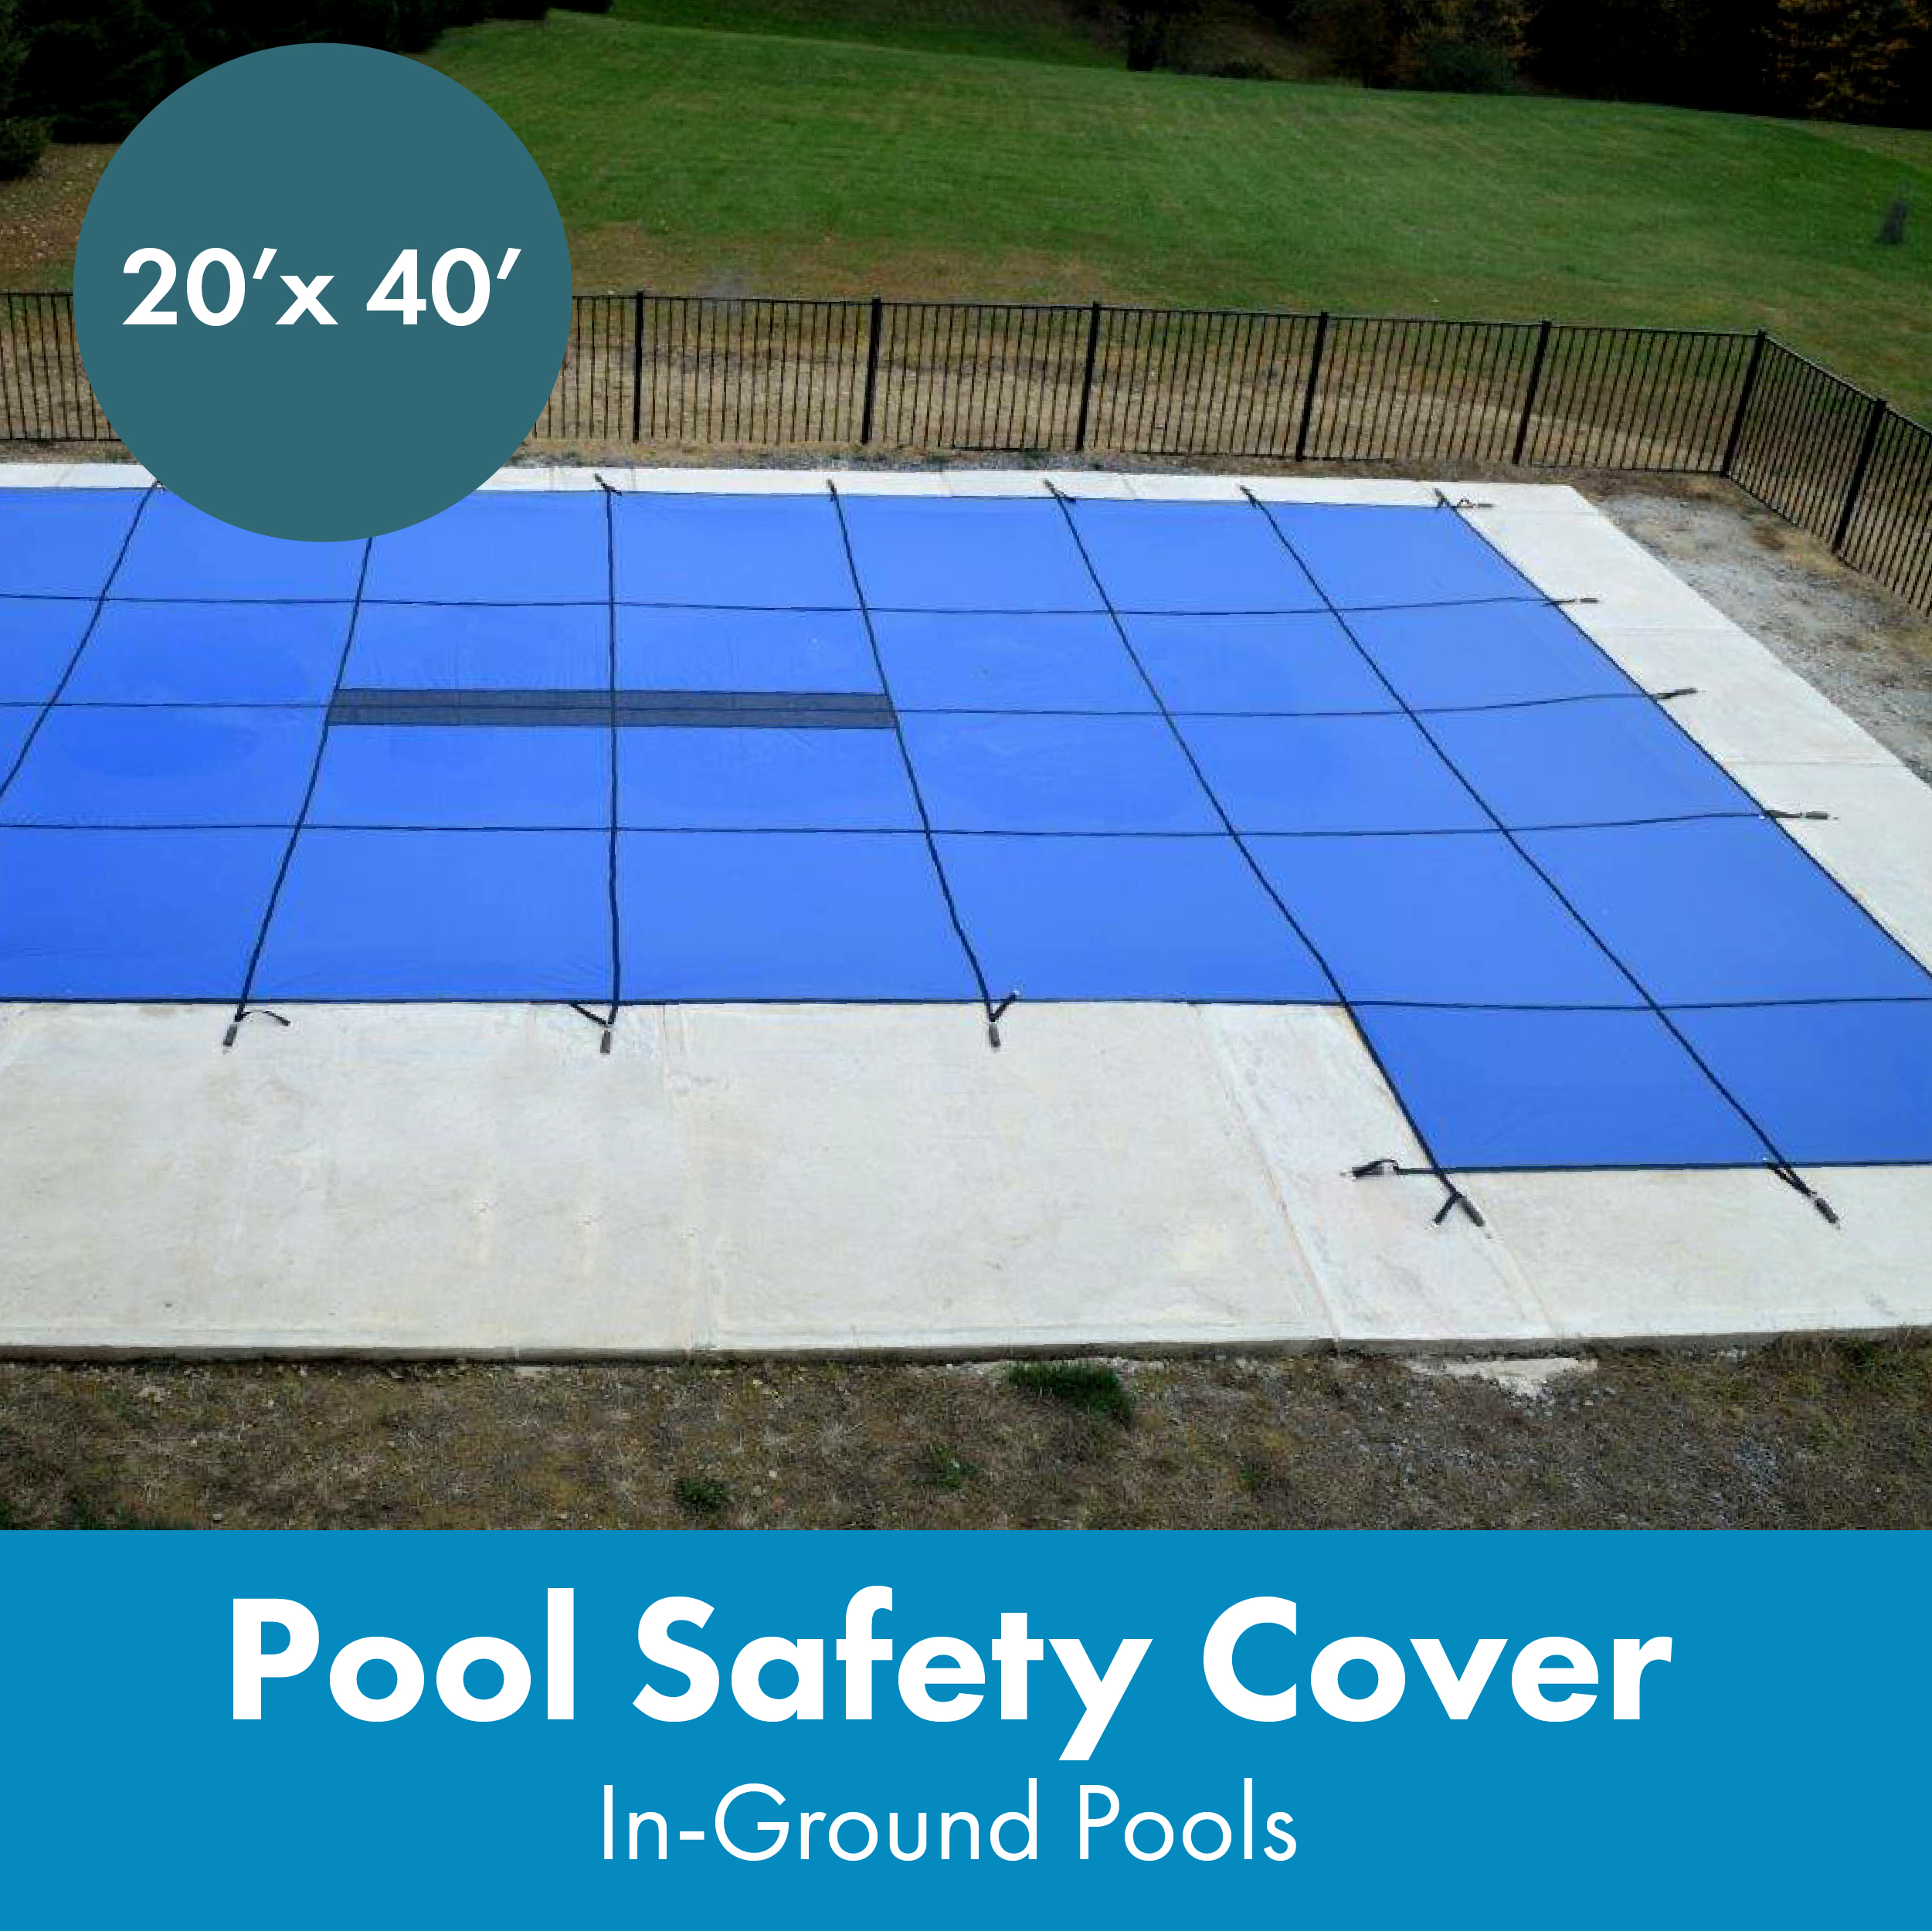 WaterWarden Inground Pool Safety Cover, Fits 20' x 40', Solid Blue, Center Drain Panel, Right Step (Walmart)